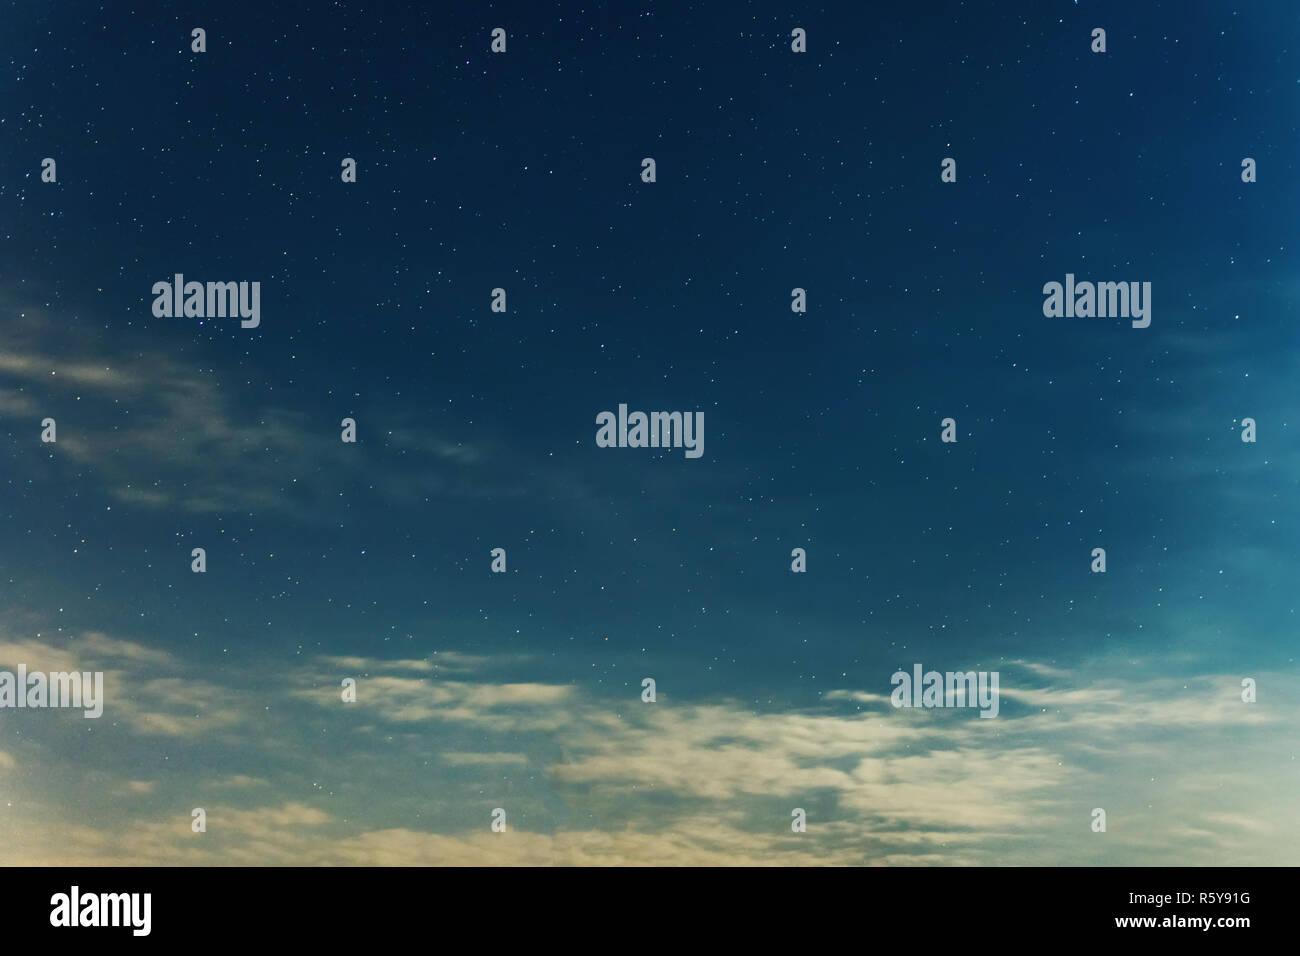 Night sky backgrounds with stars and clouds - Stock Image